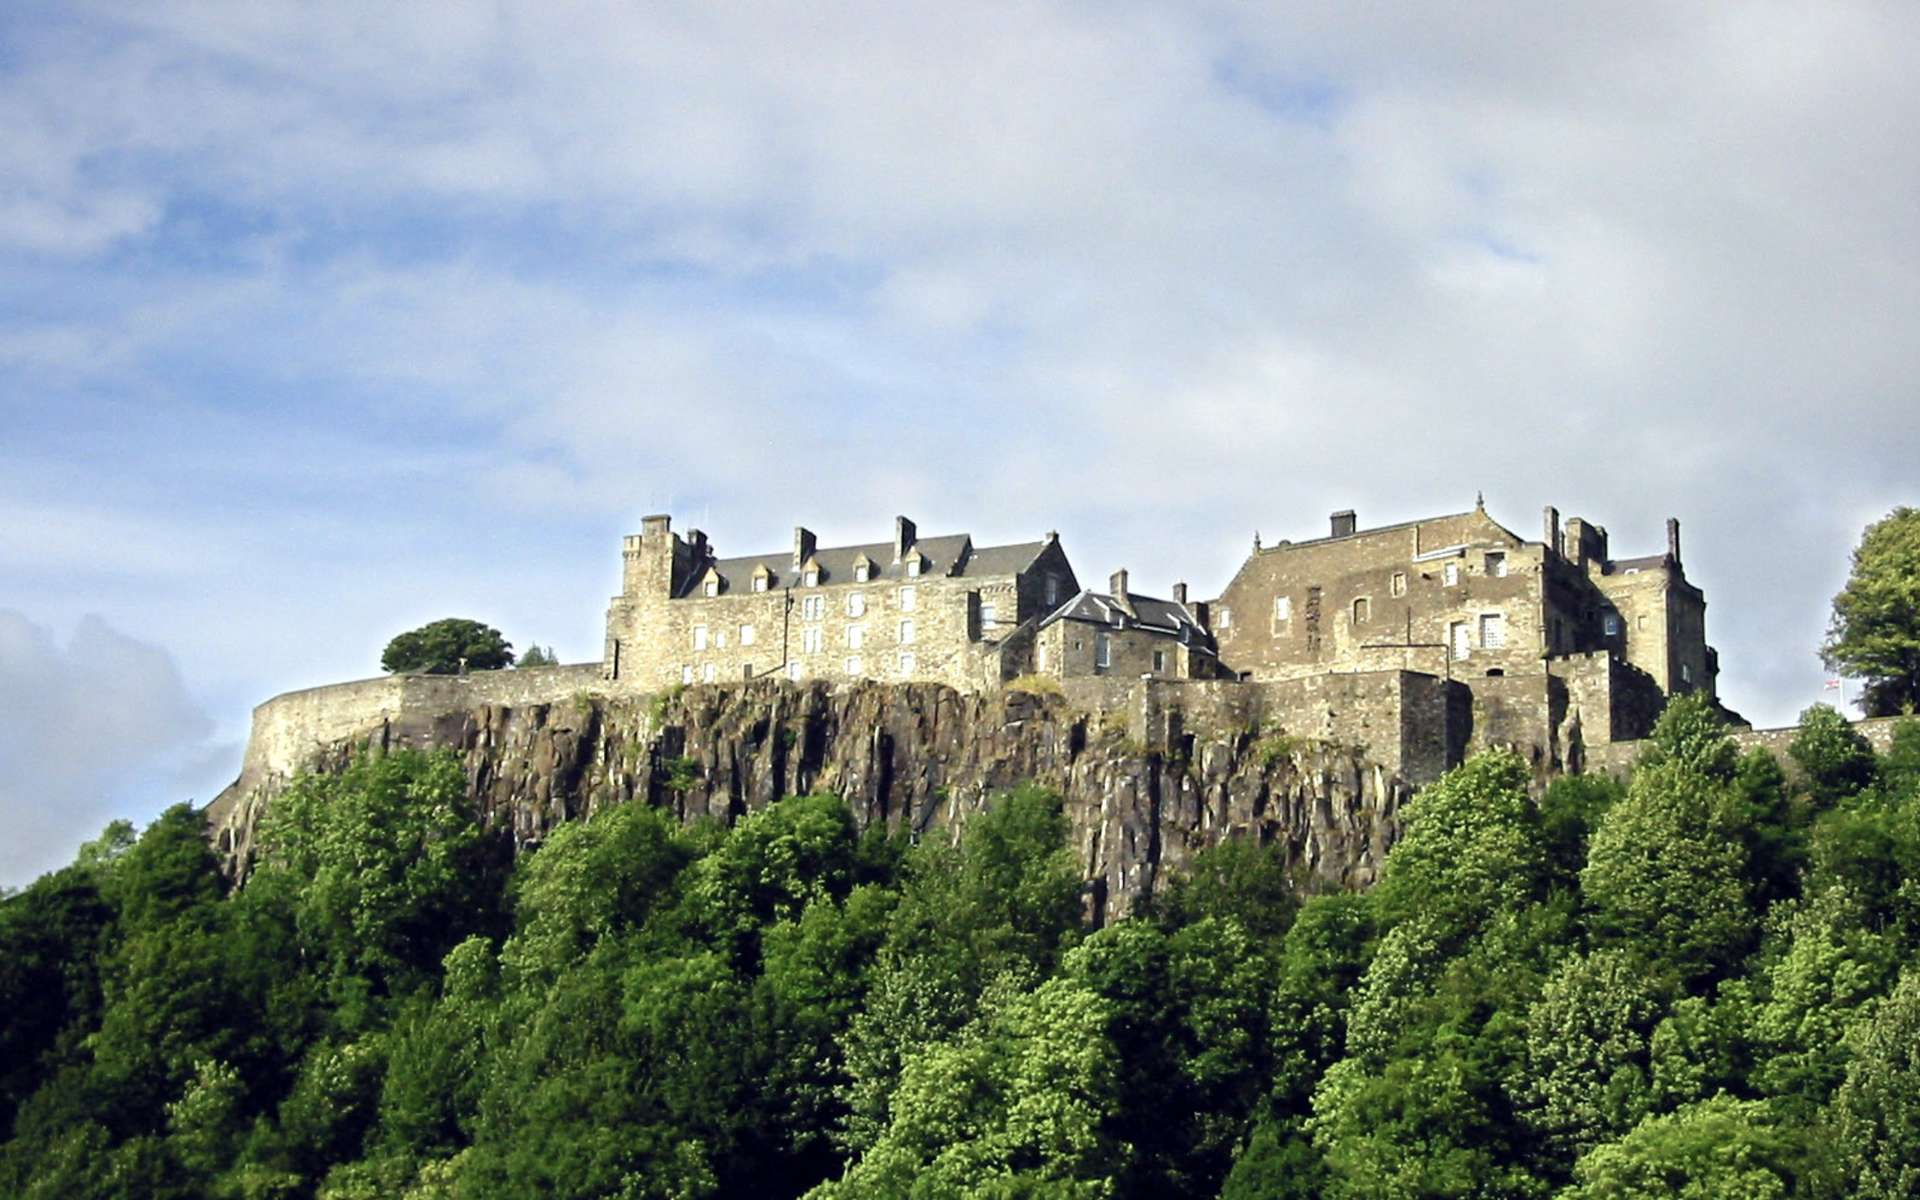 Le château de Stirling, vu sous l'angle sud-ouest. © Finlay McWalter, Wikimedia Commons, CC by-sa 3.0